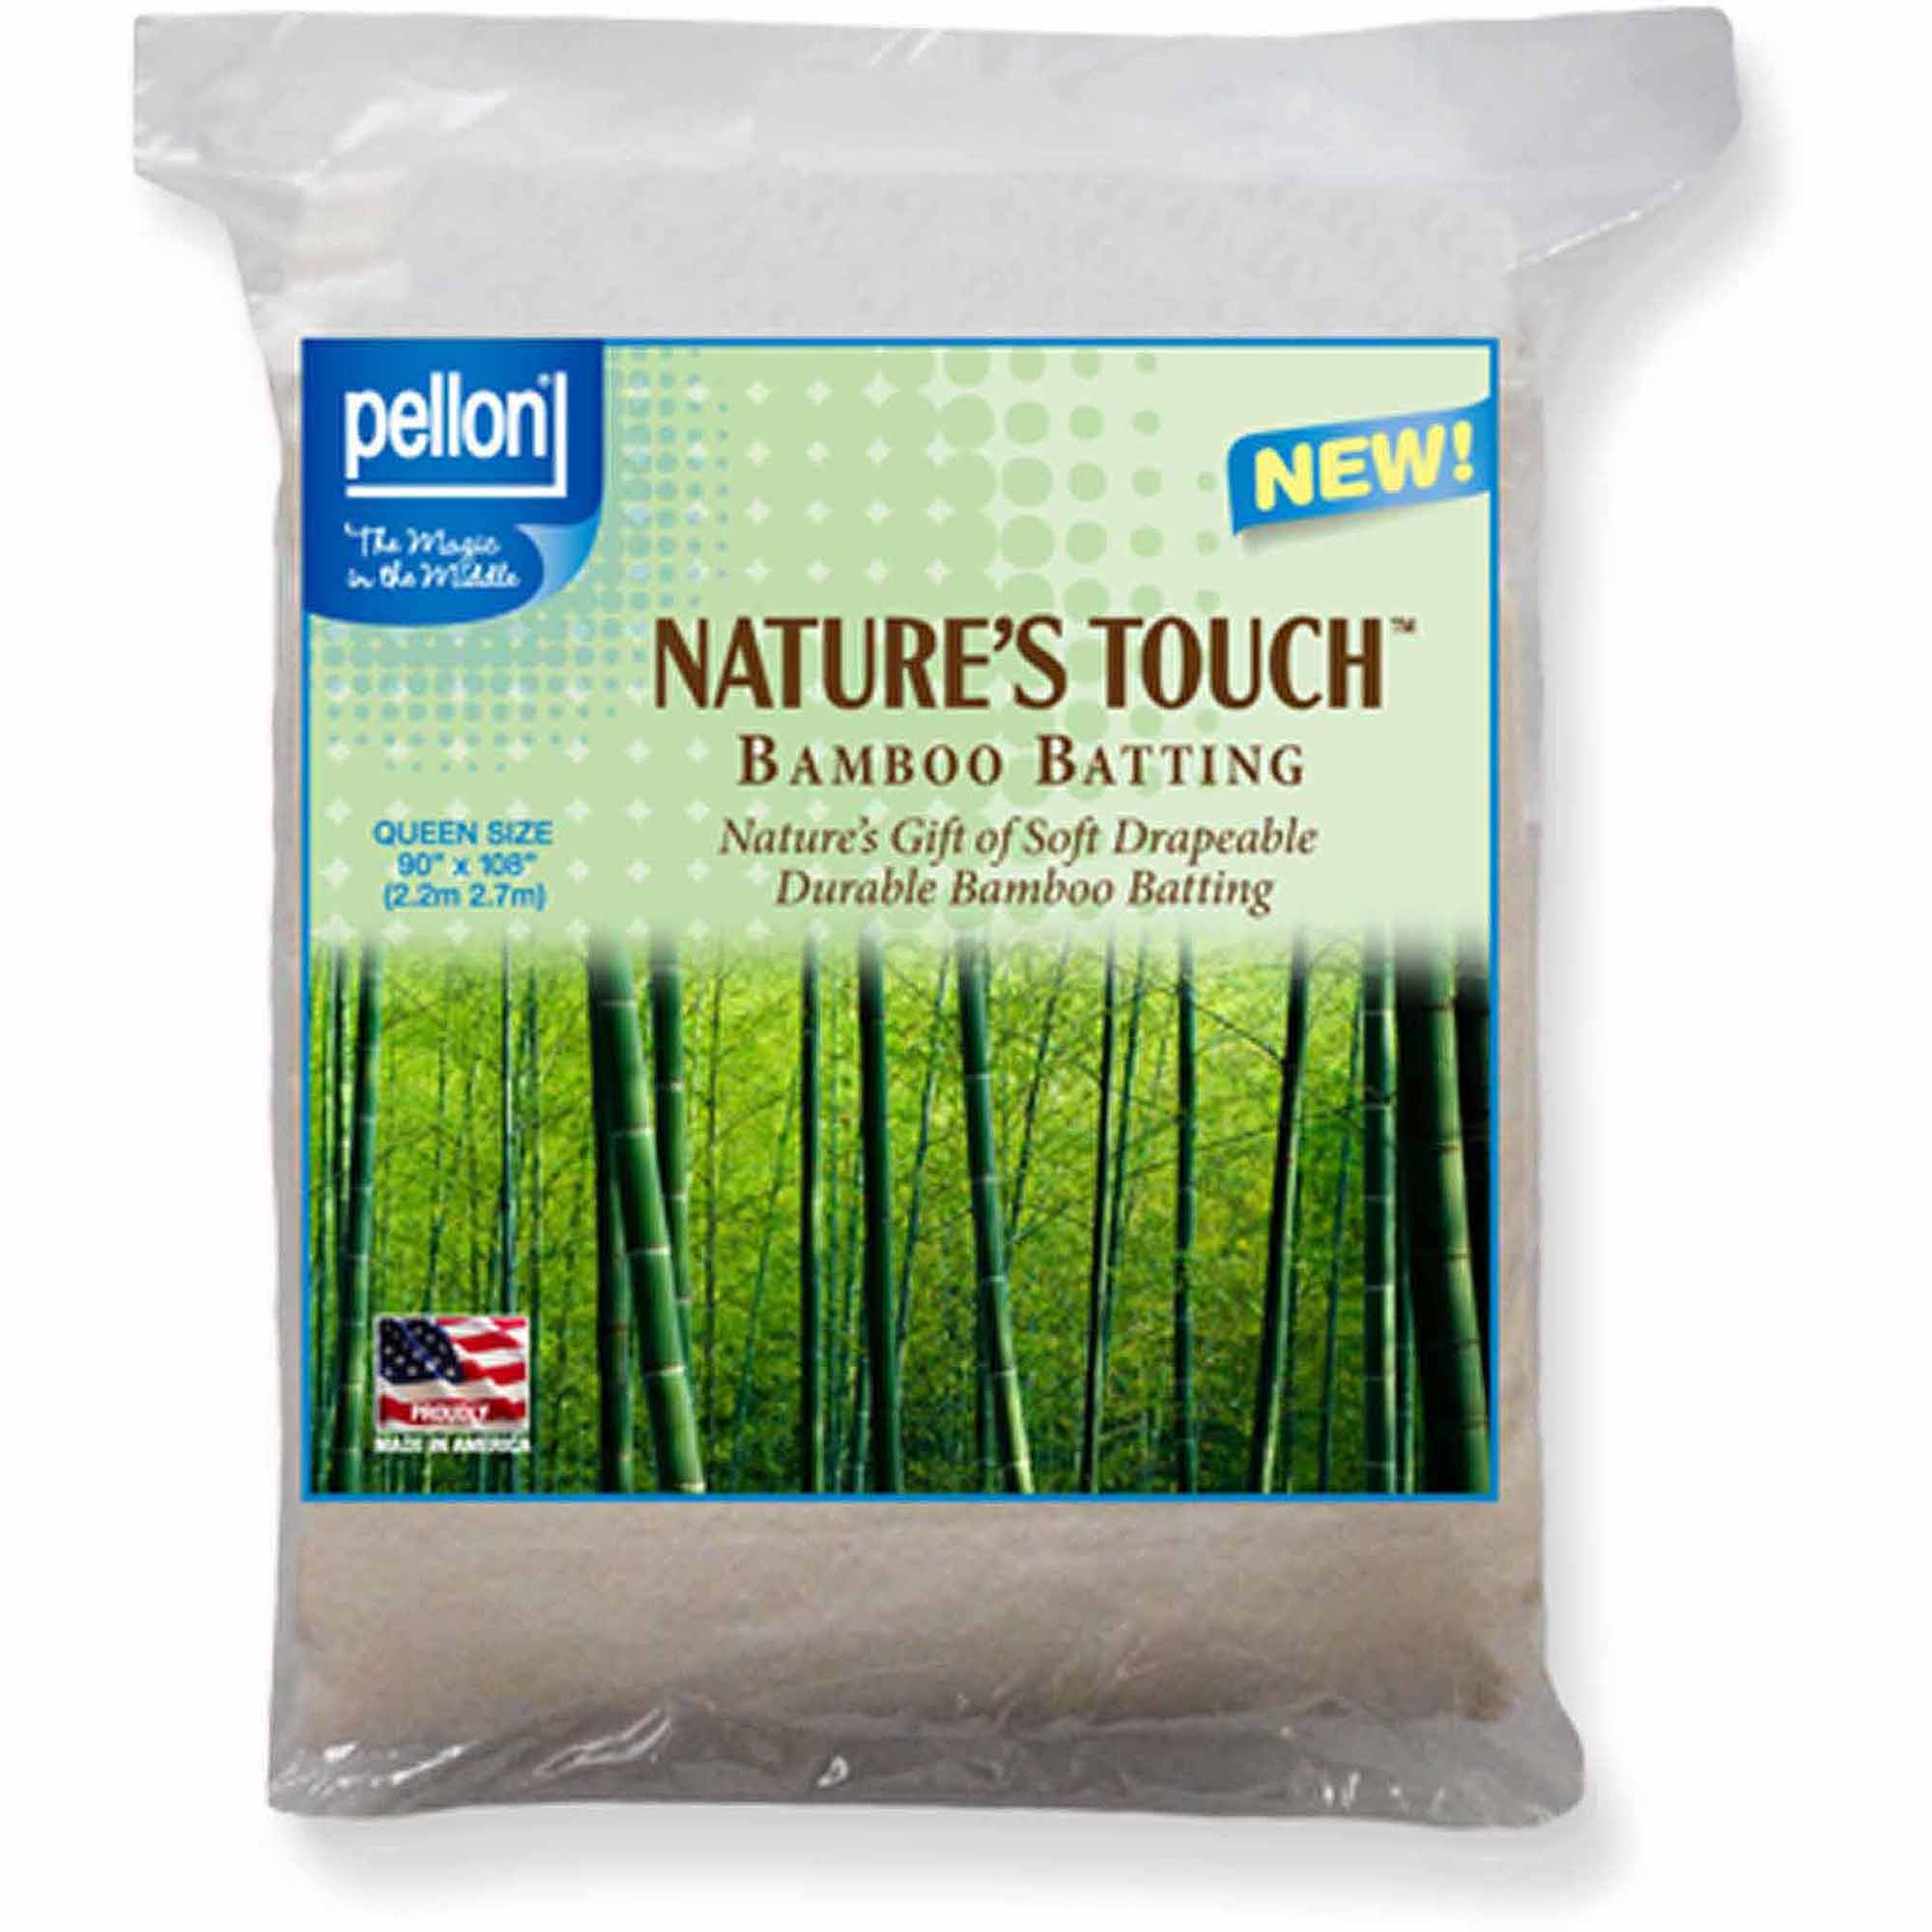 Pellon Nature's Touch Bamboo Blend Batting, Queen-Sized